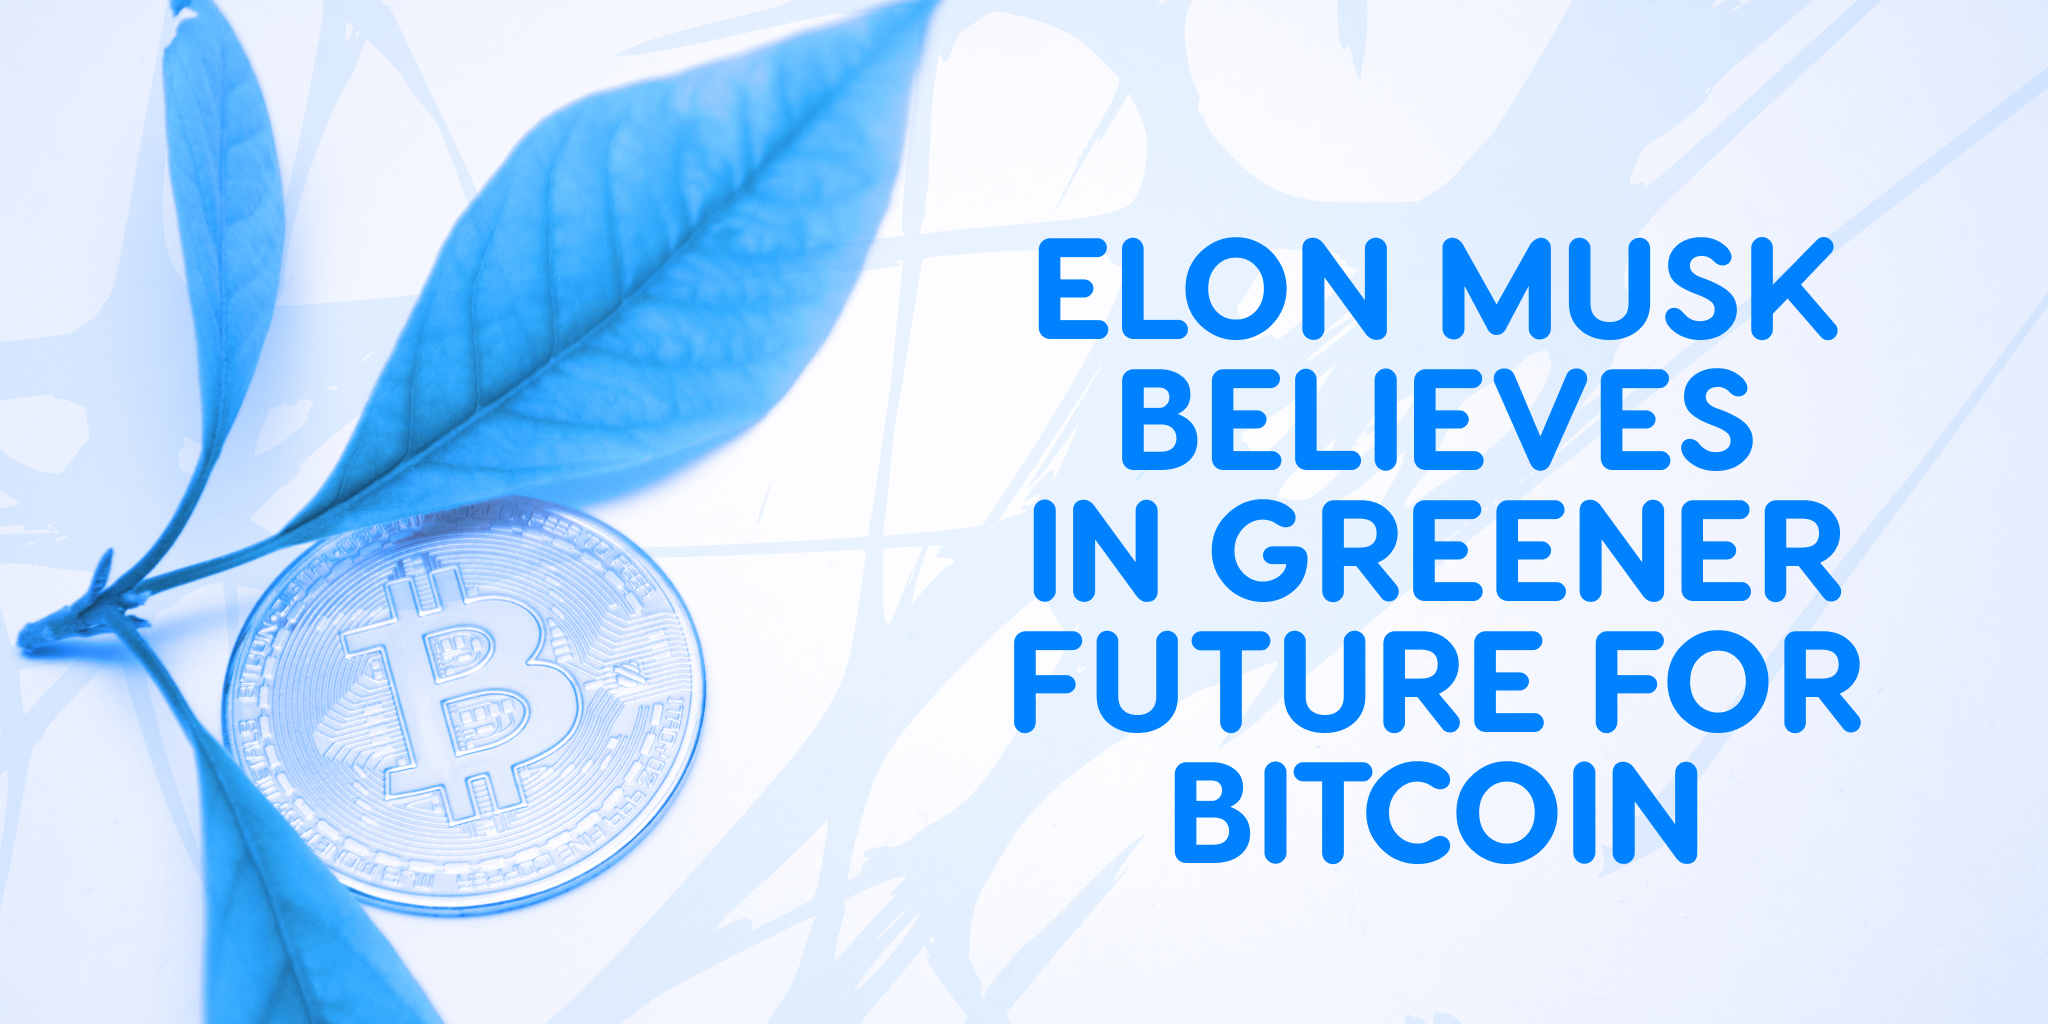 Elon Musk believes in a greener future for Bitcoin